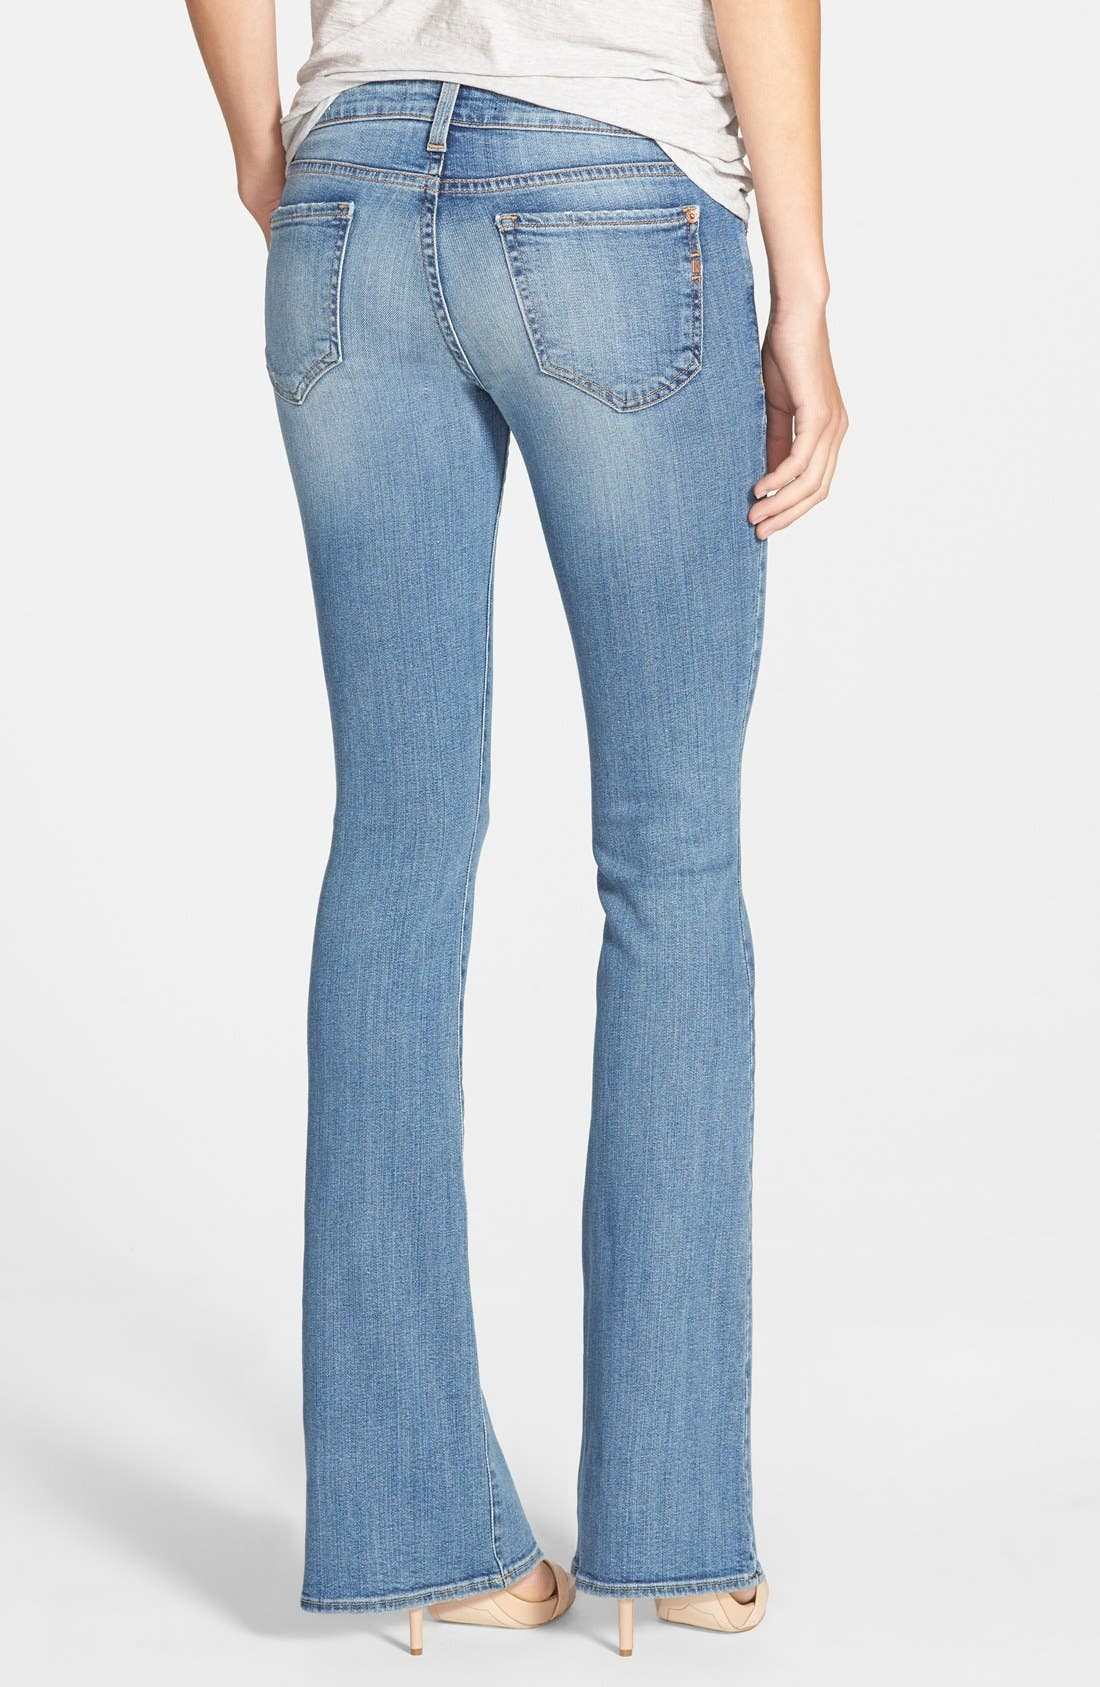 Alternate Image 2  - Genetic 'Leaf' Low Rise Flare Jeans (Canyon)